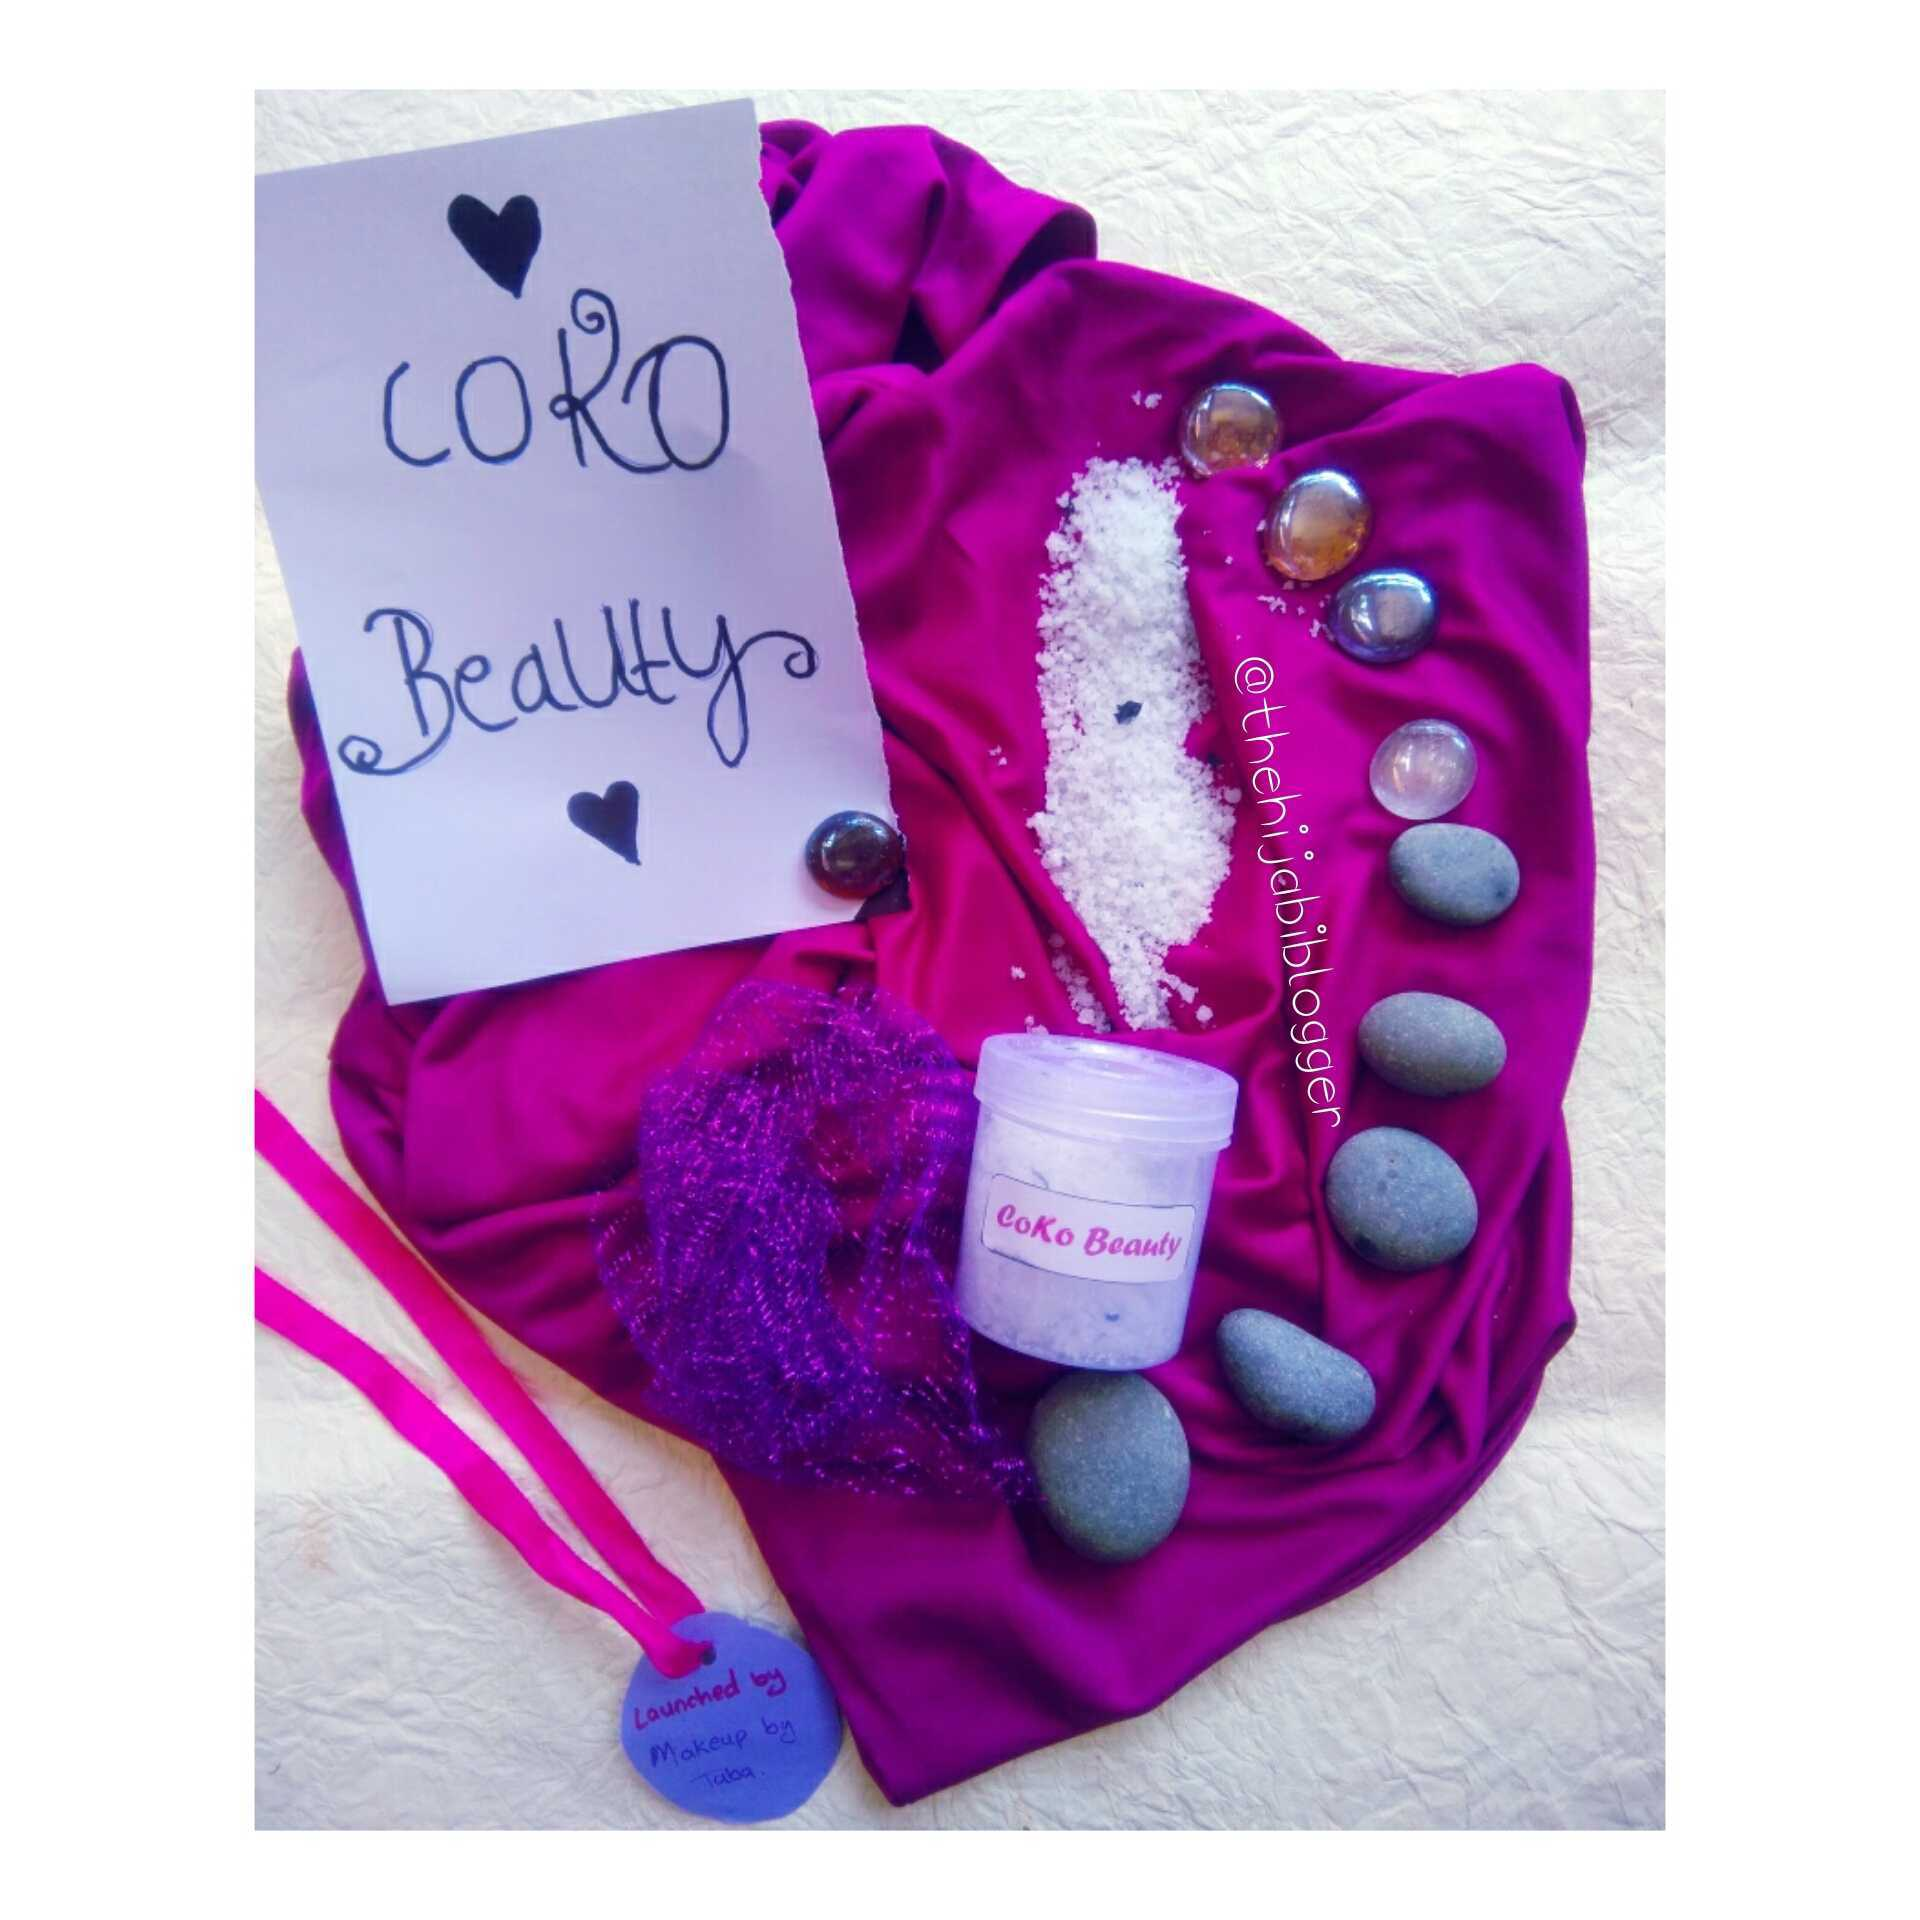 COKO BEAUTY - CURATED WITH LOVE image